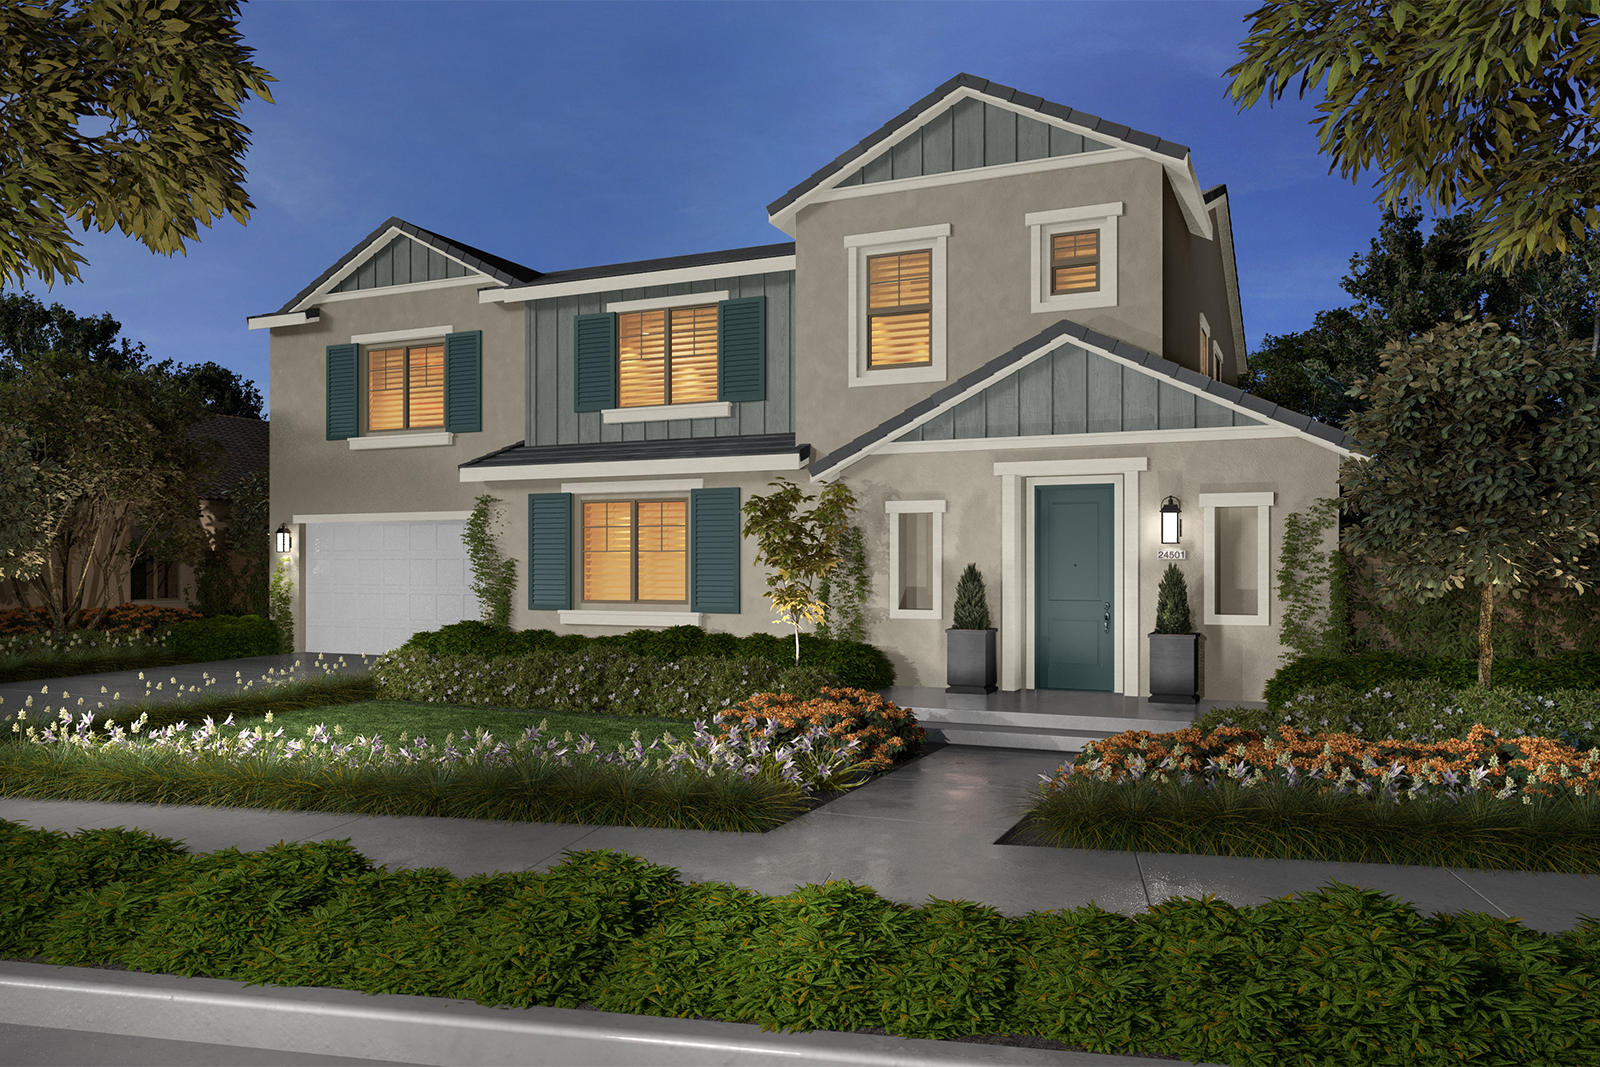 New Homes Coming Soon to Menifee Community